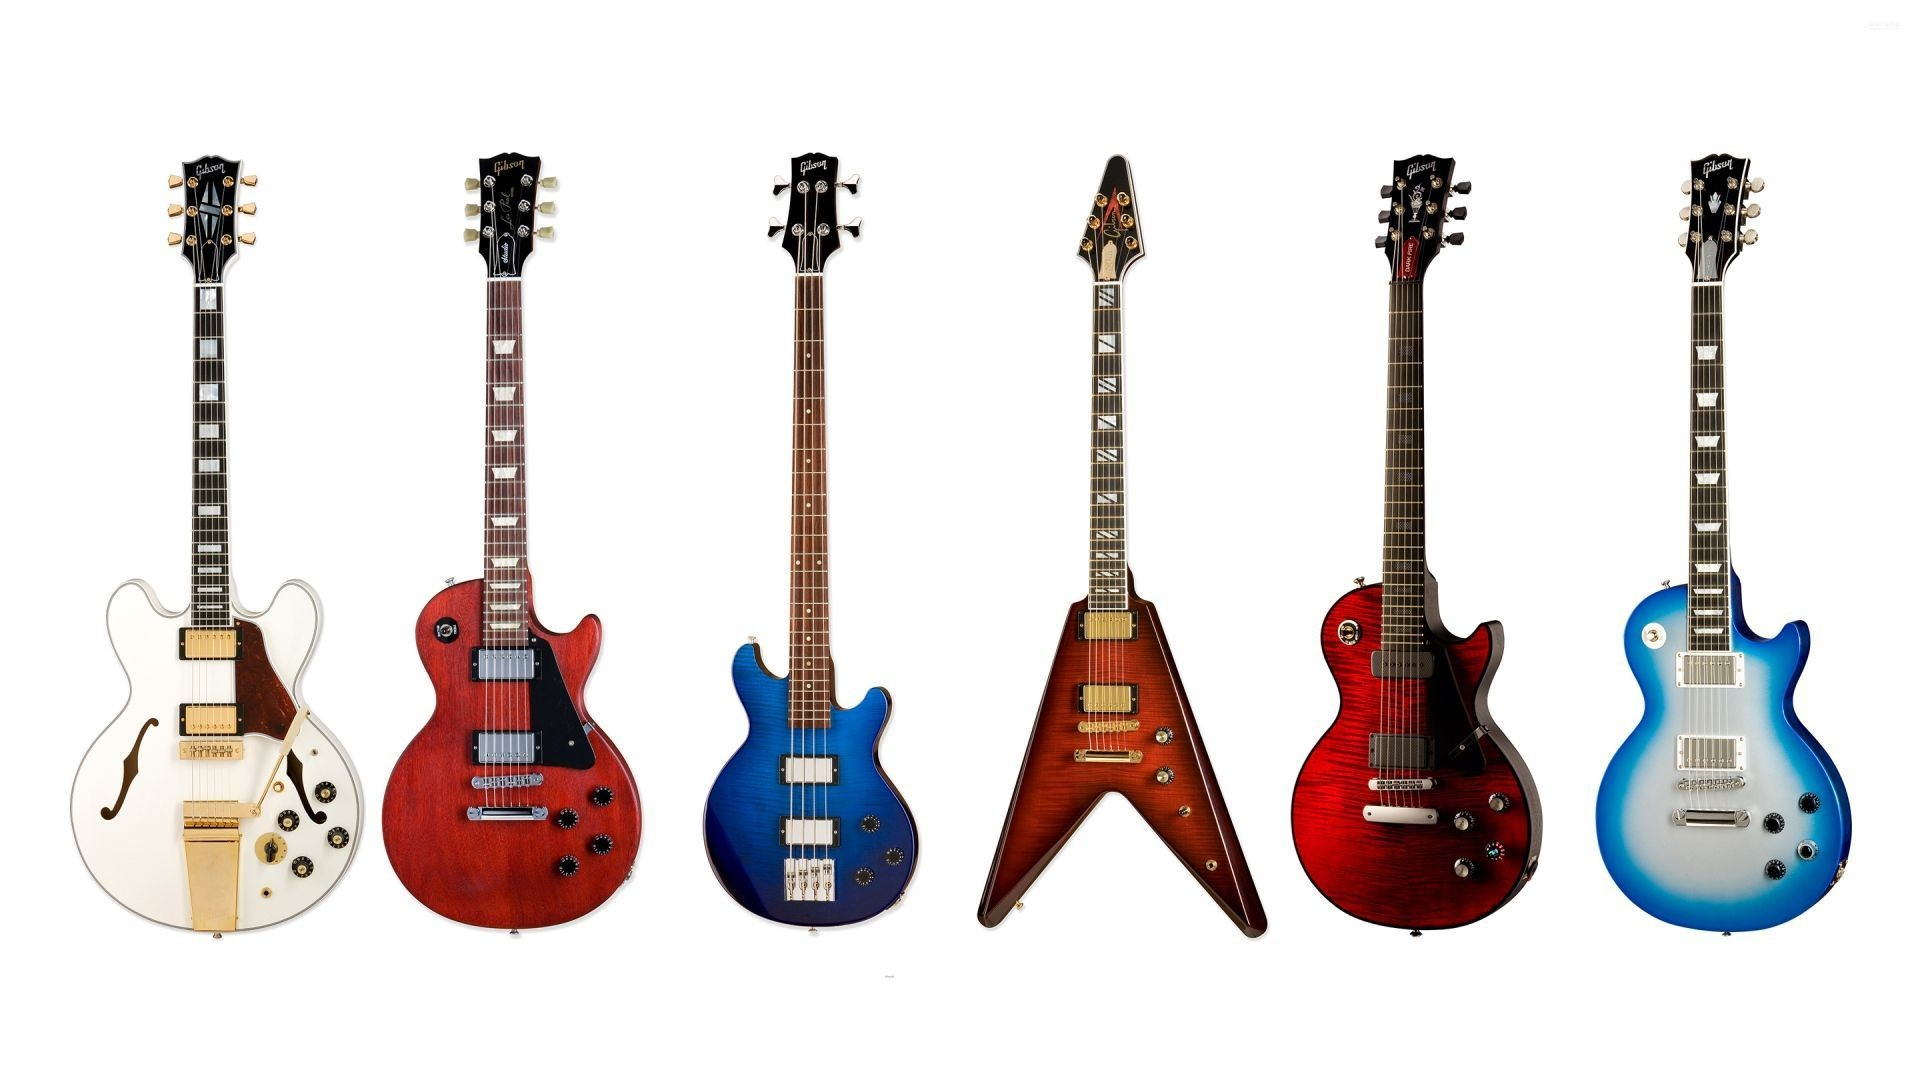 prs guitar wallpaper hd 1080p 52 images